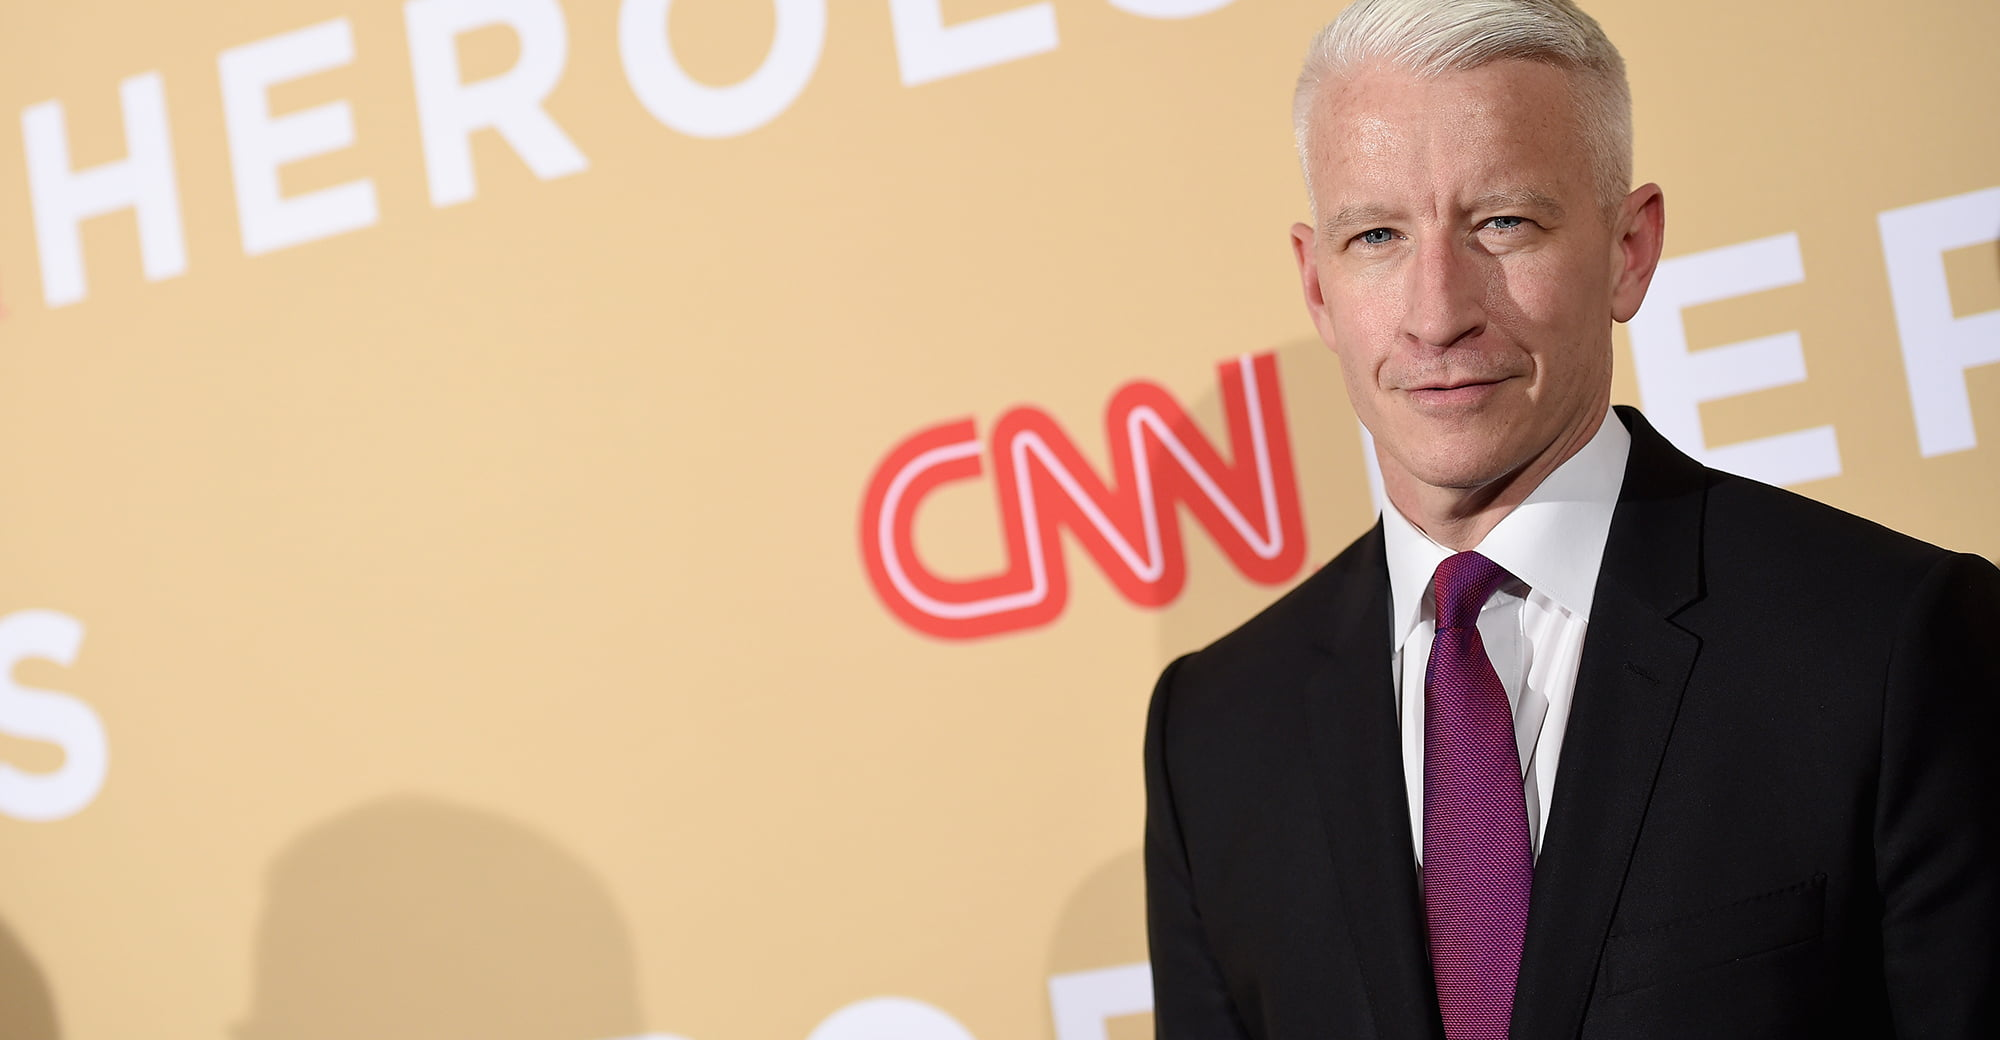 Anderson Cooper Will Inherit Less Than $1.5 Million from Gloria Vanderbilt's Estate